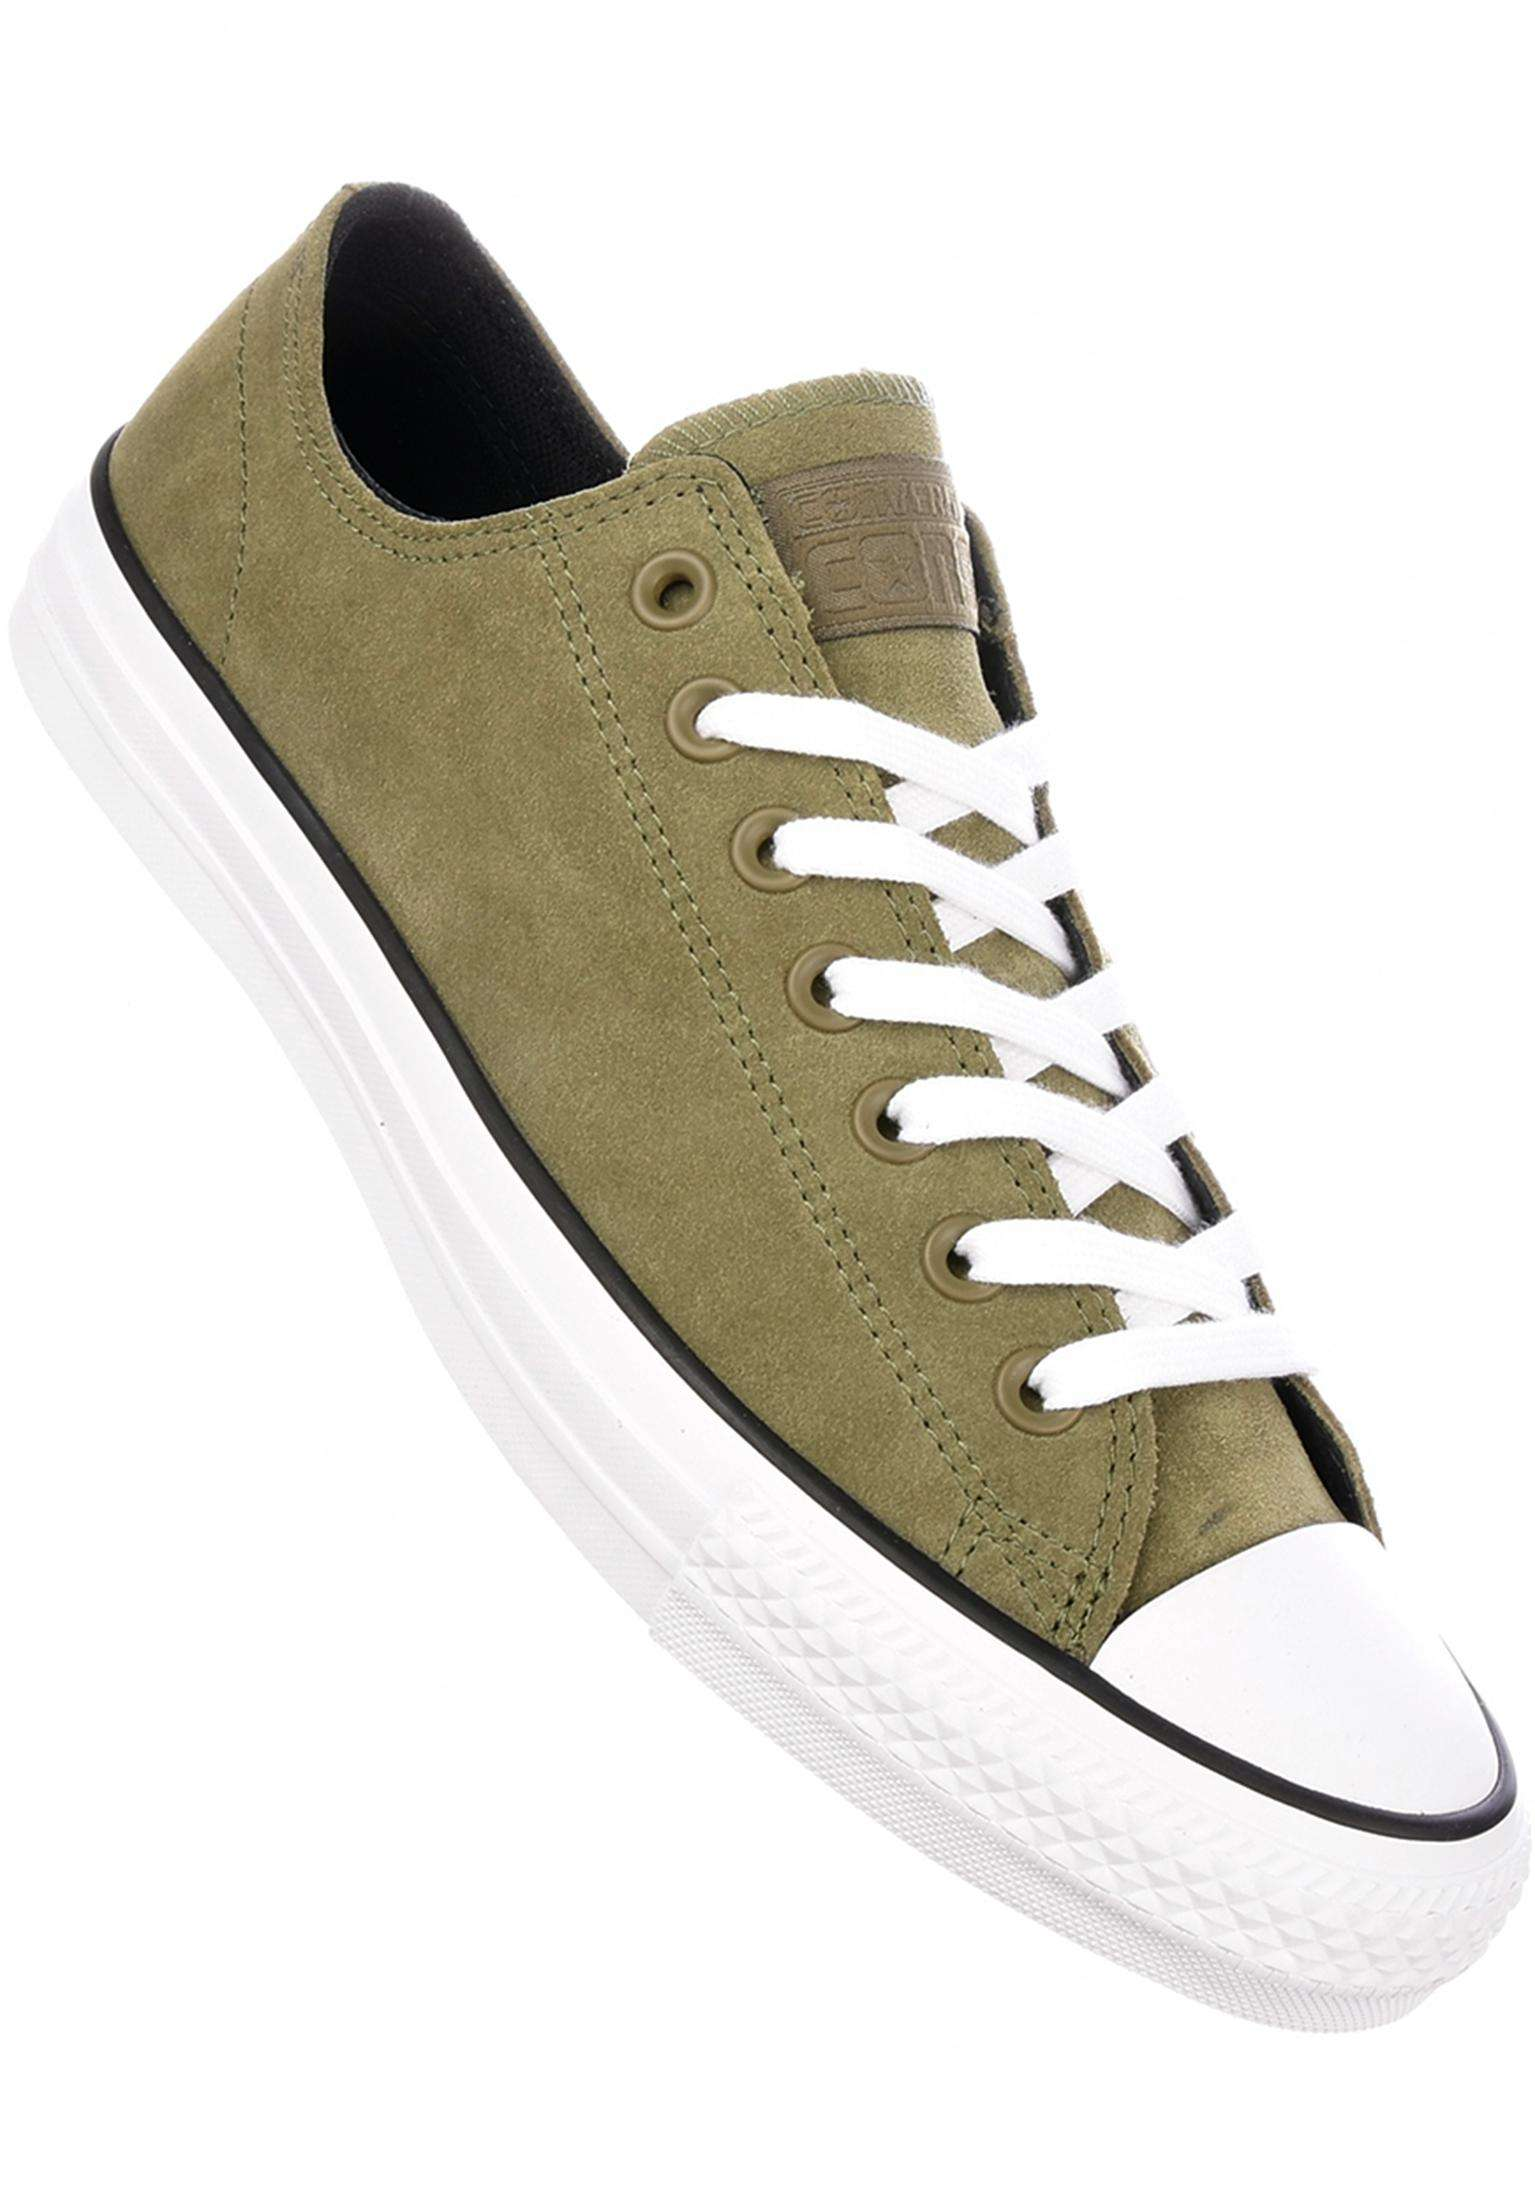 e02c9ee591e CTAS Pro Suede Ox Converse CONS All Shoes in mediumolive for Men